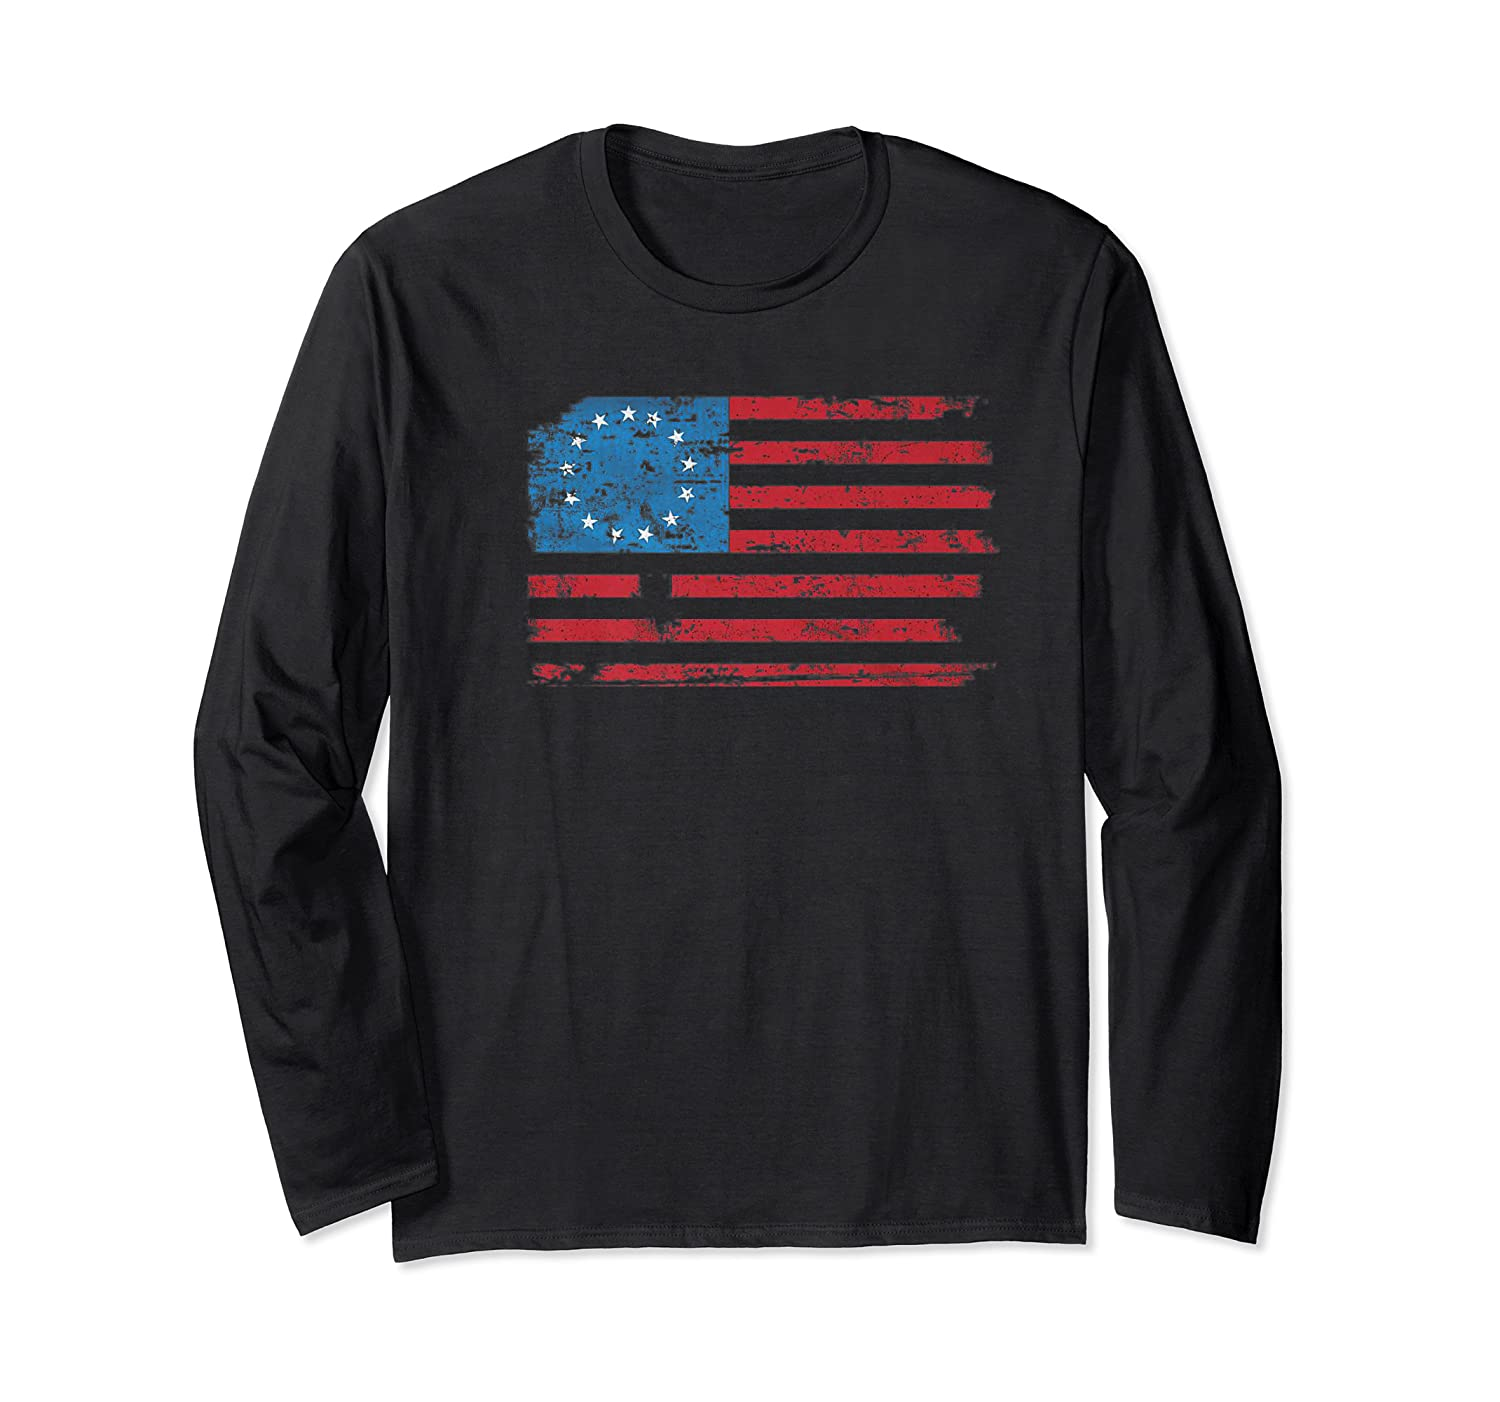 Distressed Betsy Ross Us American Flag Shirt For 4th Of July Premium T-shirt Long Sleeve T-shirt